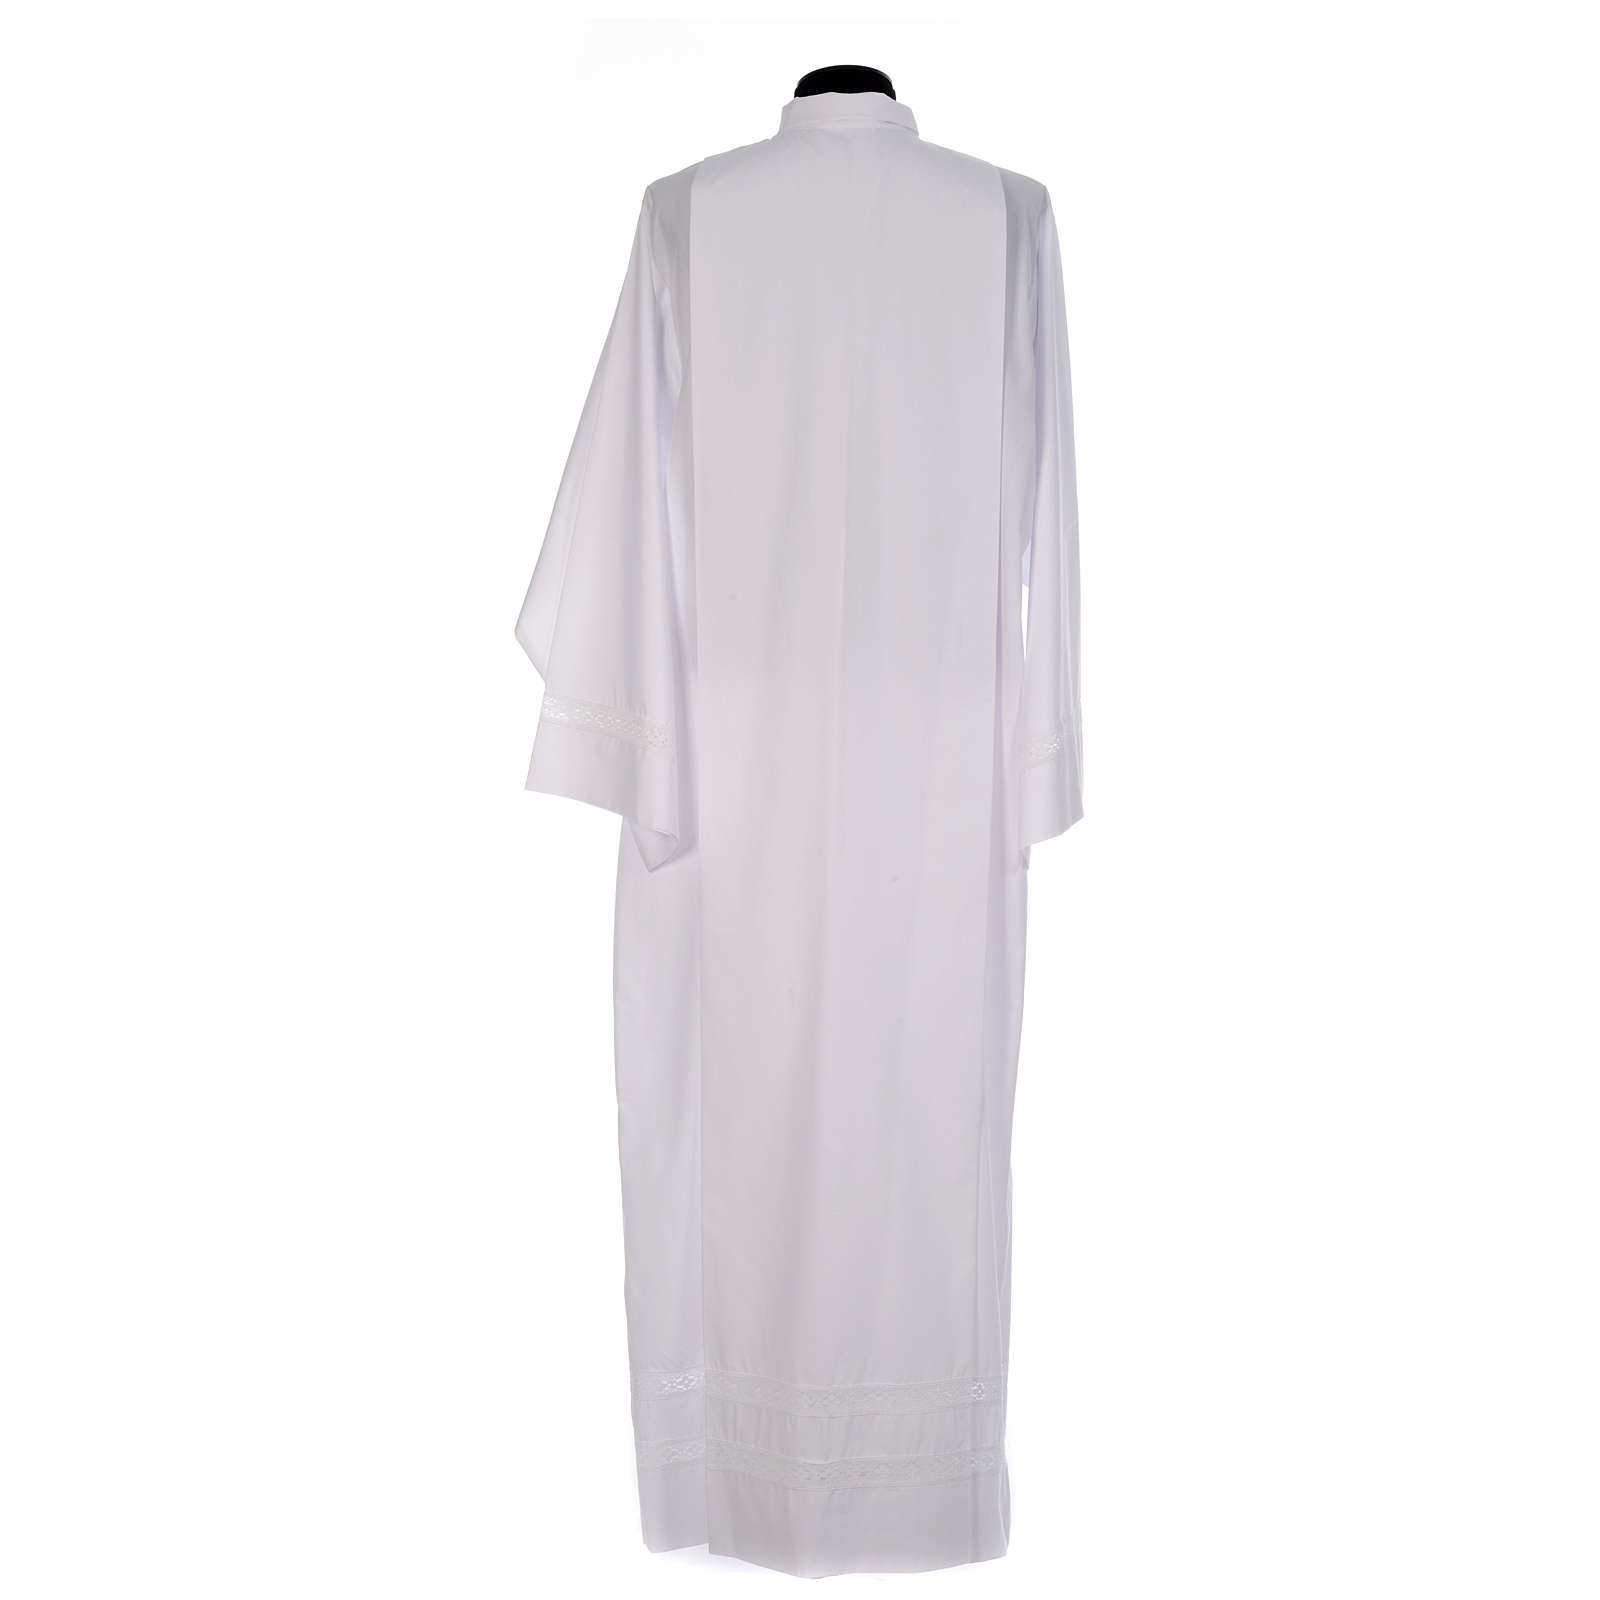 Monastic Alb with cotton lace on hem and sleeves in cotton mix 4